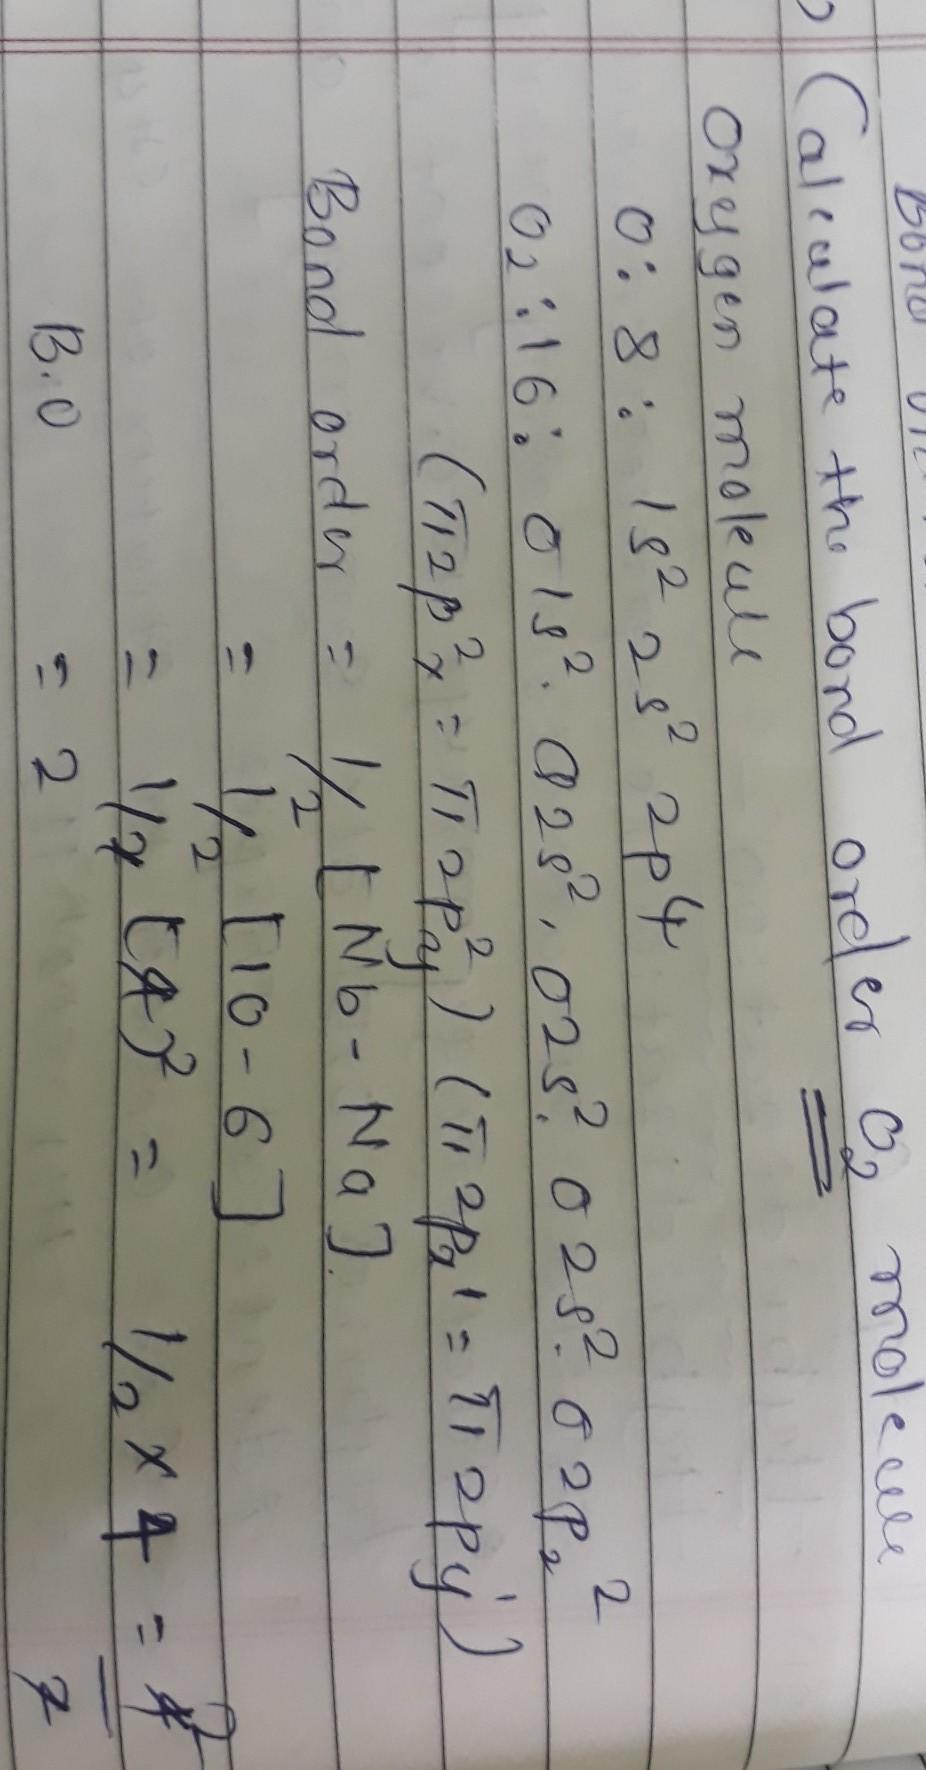 Calculate The Bond Order Of O2 Molecules - Brainly.in